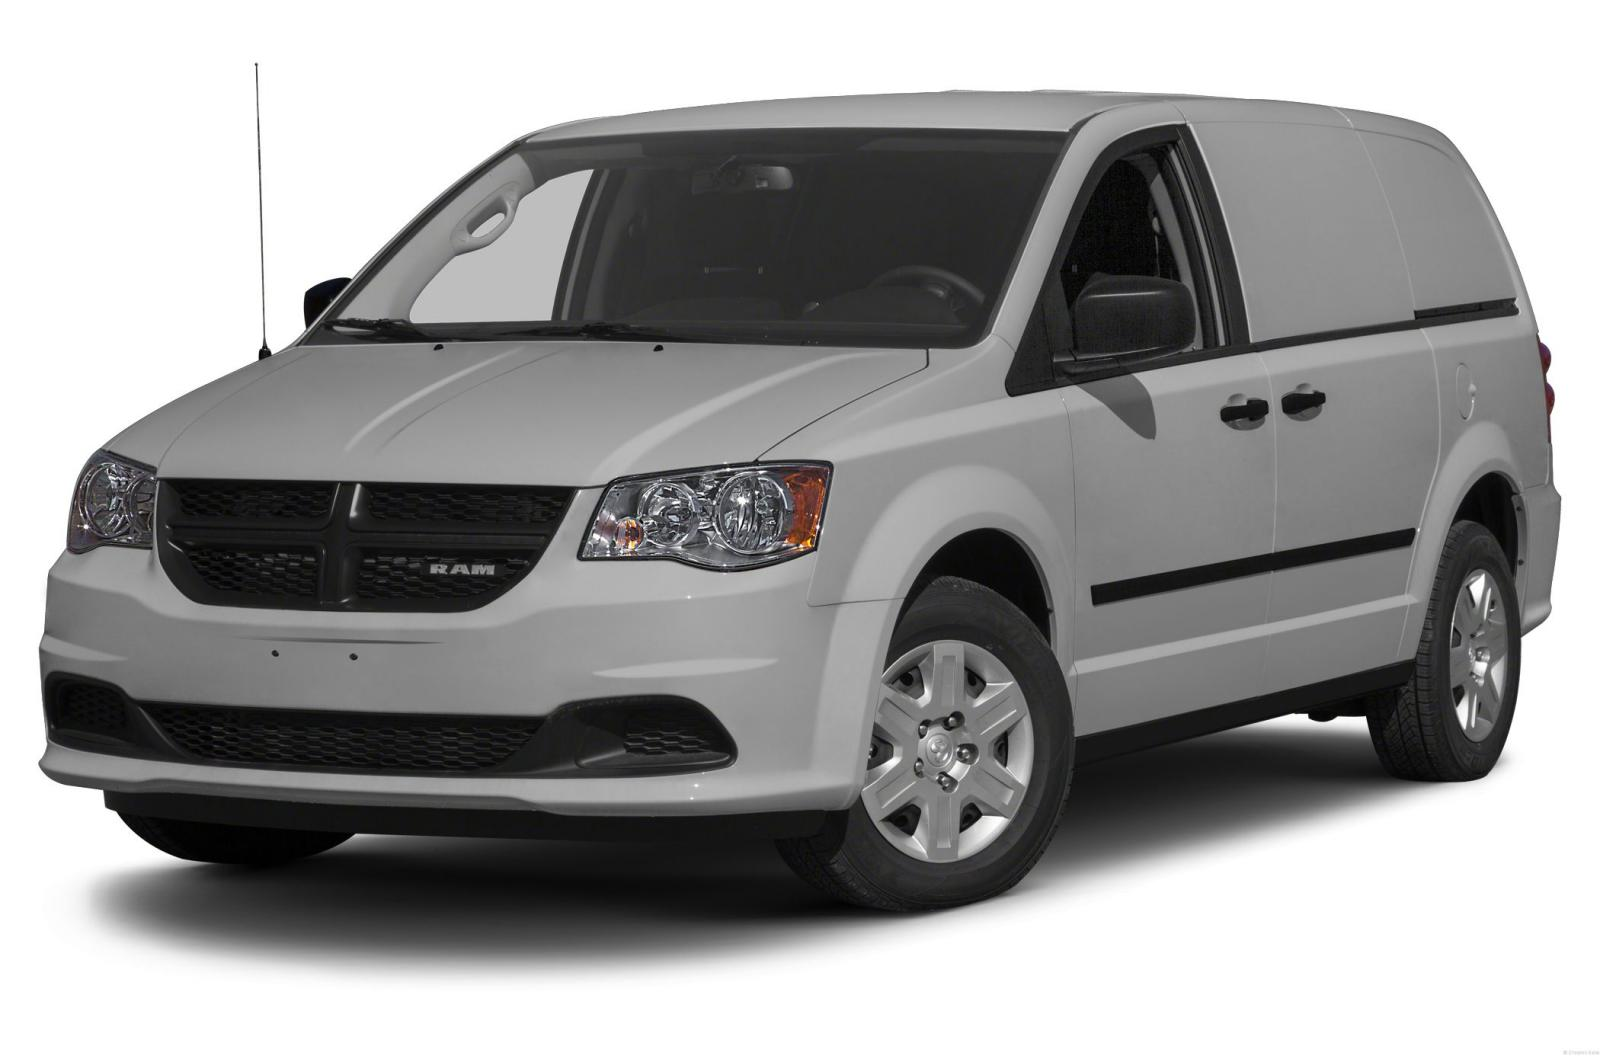 2012 ram c v cargo van information and photos zombiedrive. Black Bedroom Furniture Sets. Home Design Ideas